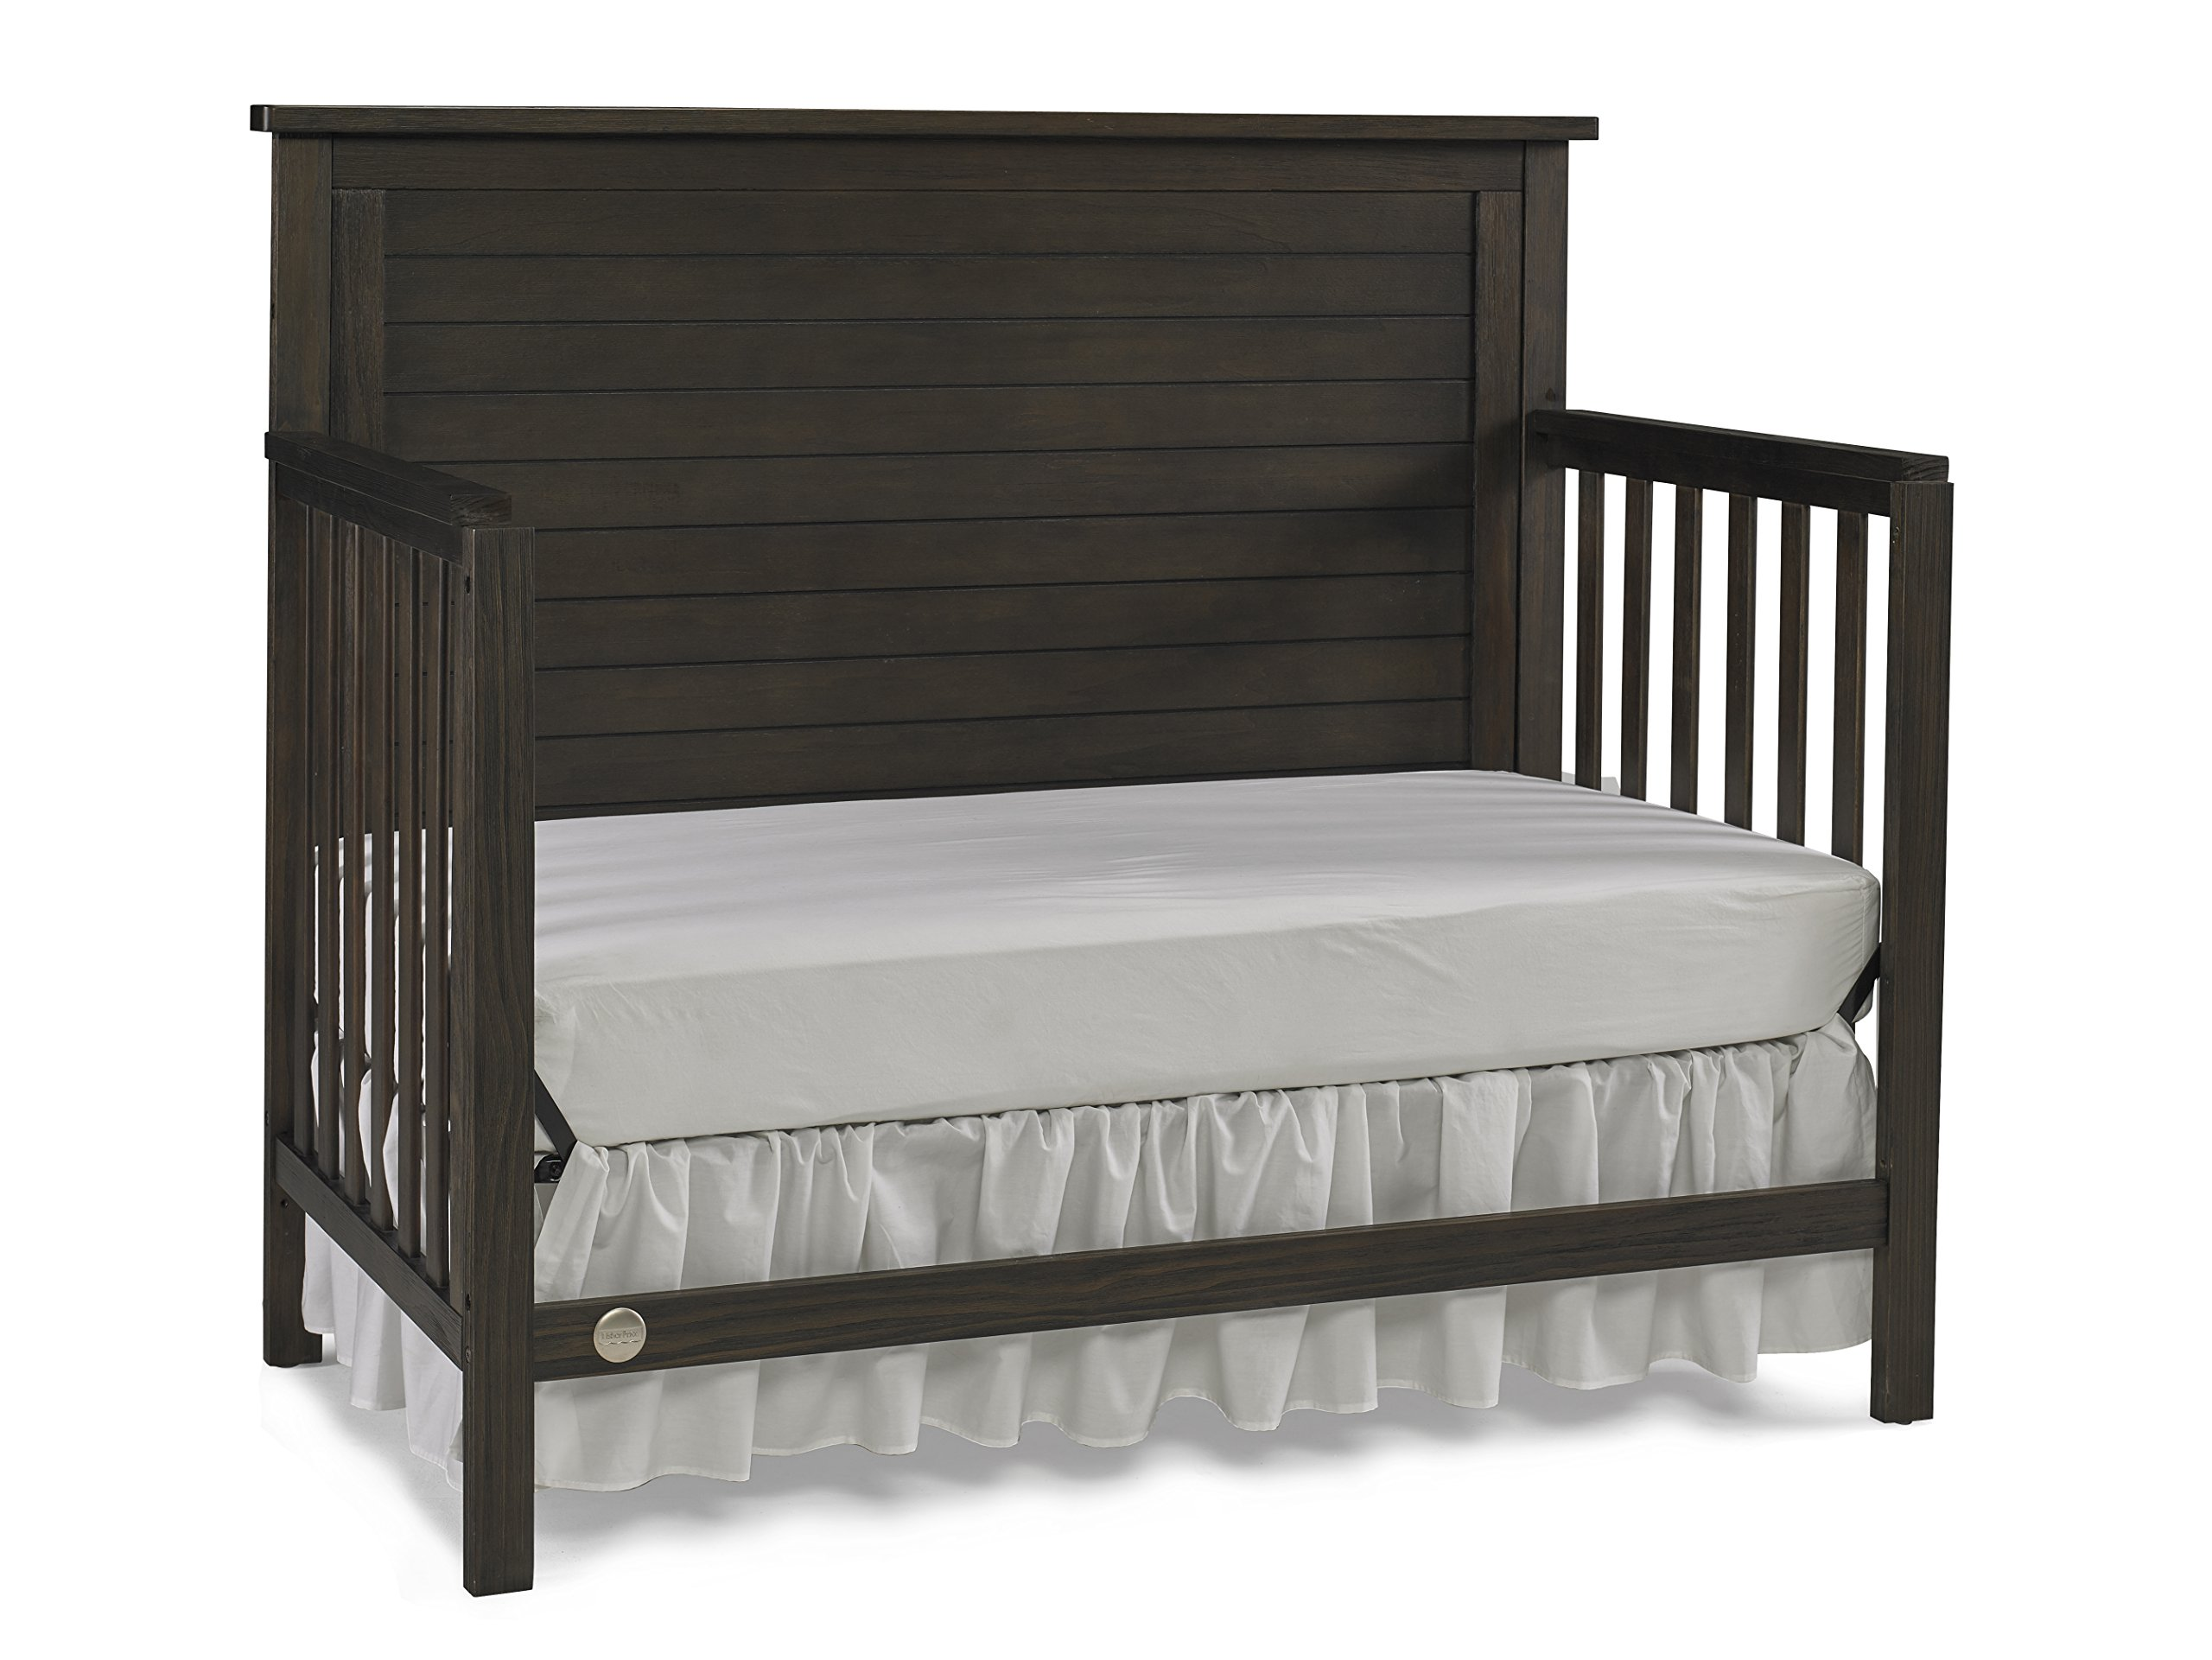 Fisher-Price Quinn 4 in 1 Convertible Crib, Wire Brushed Brown by Fisher-Price (Image #7)